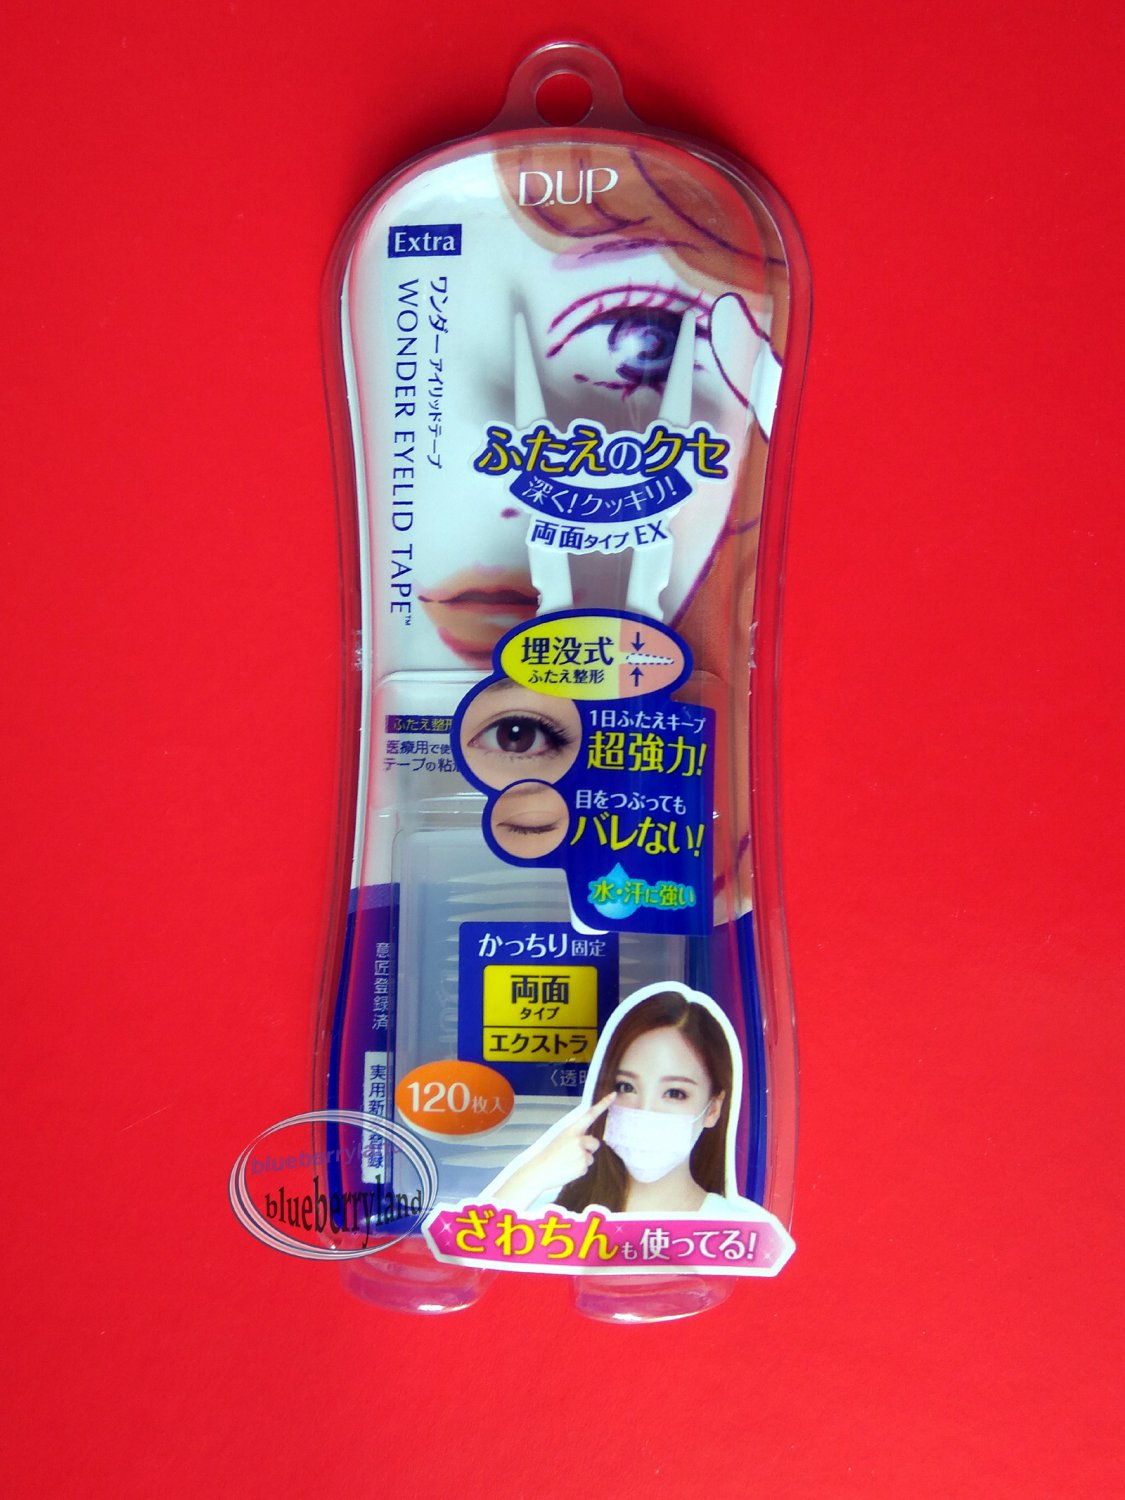 Japan D-up Extra Strong Wonder Eyelid Tape for Natural Double Eyelid